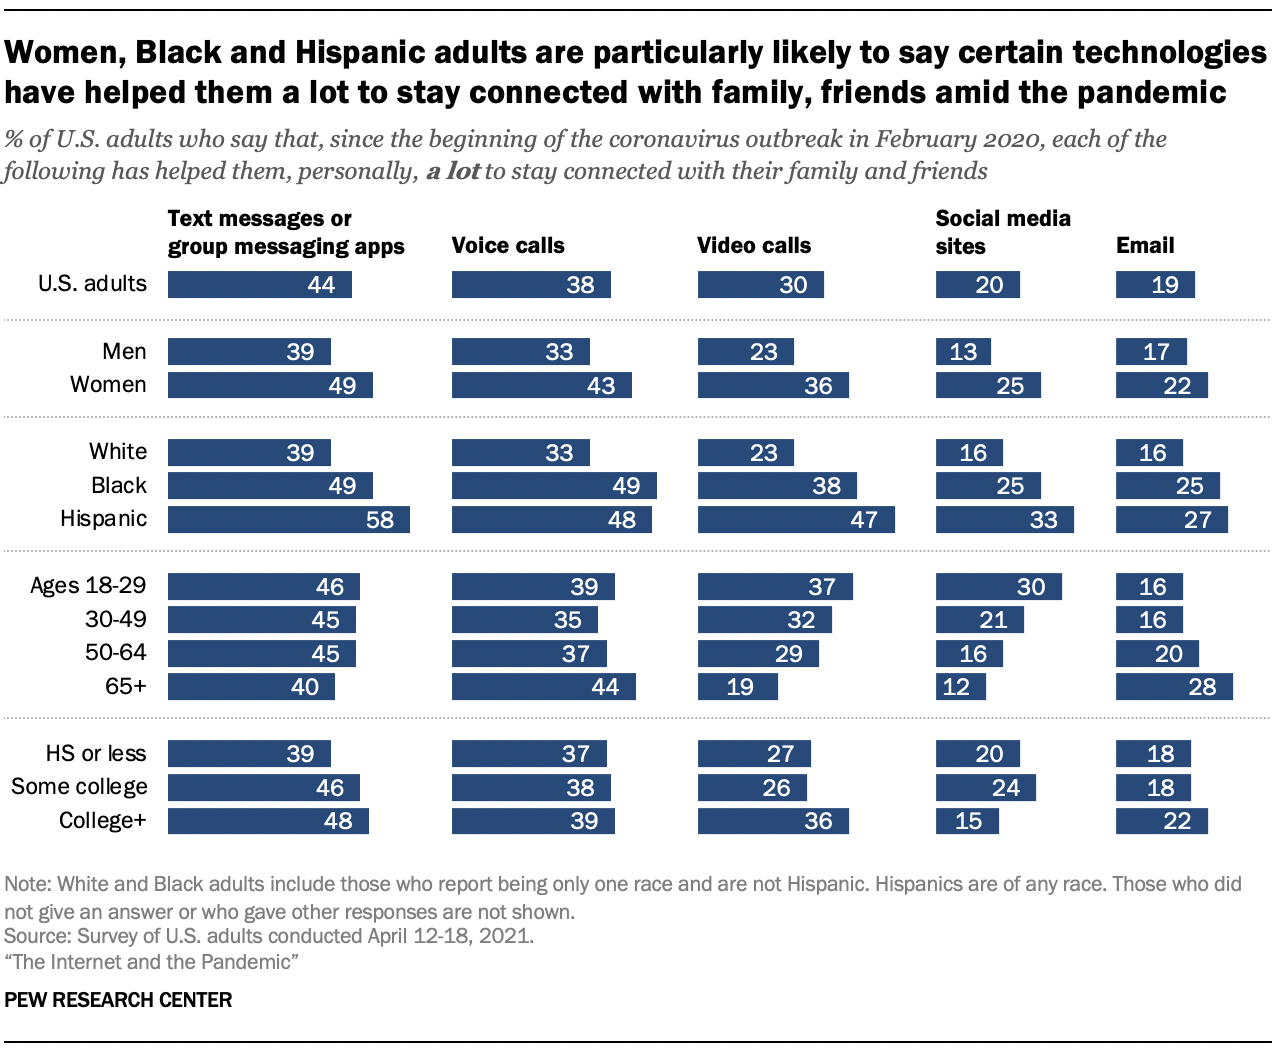 Women, Black and Hispanic adults are particularly likely to say certain technologies have helped them a lot to stay connected with family, friends amid the pandemic